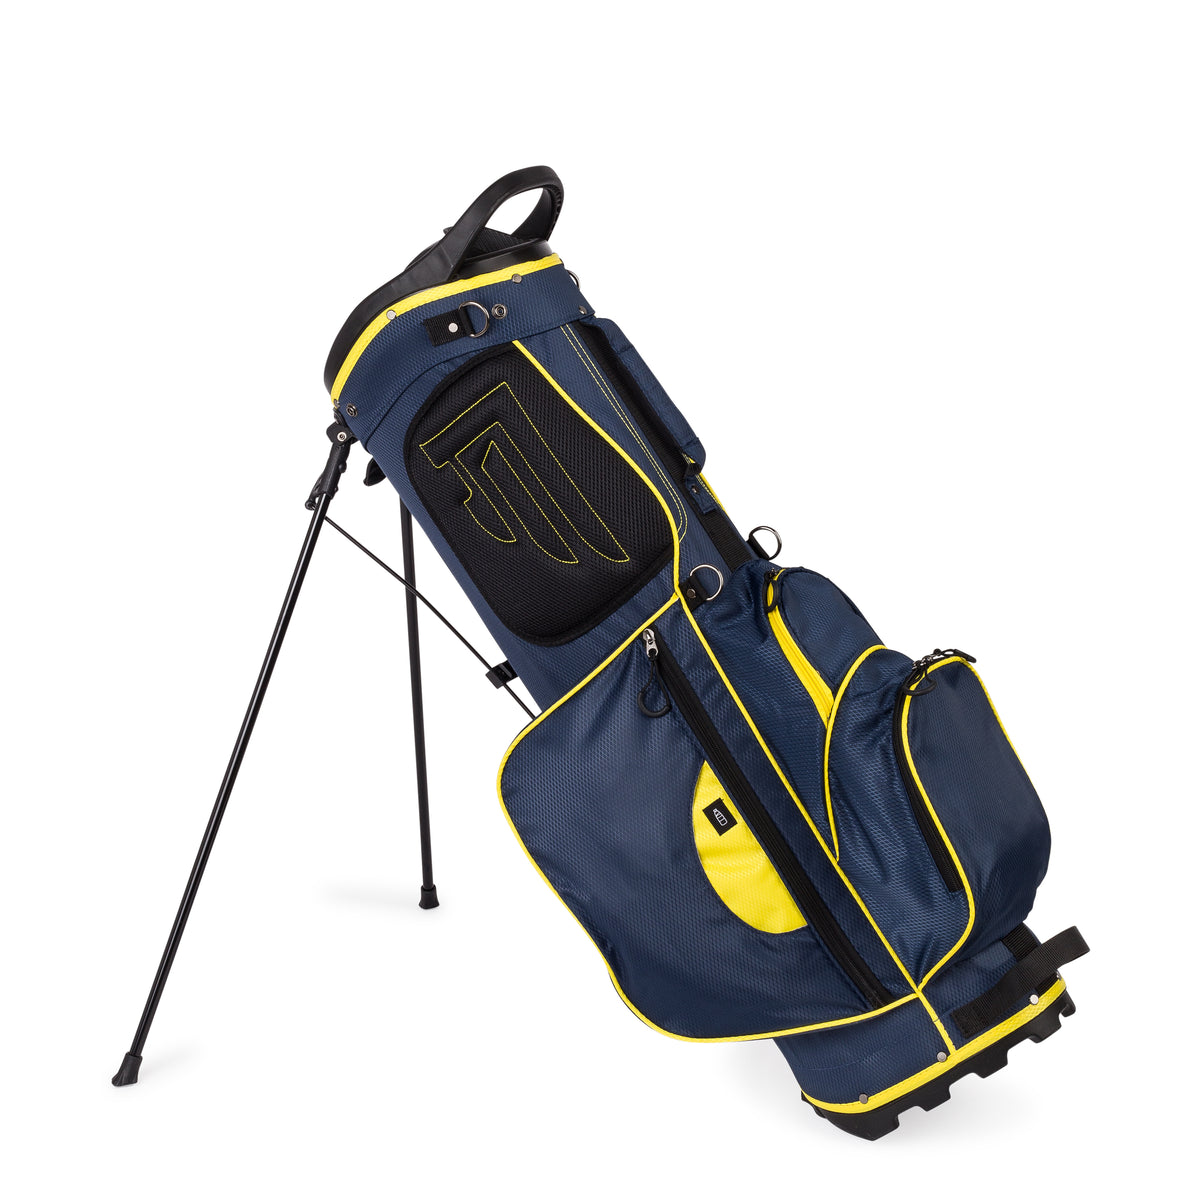 Founders Club Golf Stand Bag for Walking 14 Way Organizer Top Shaft Lock